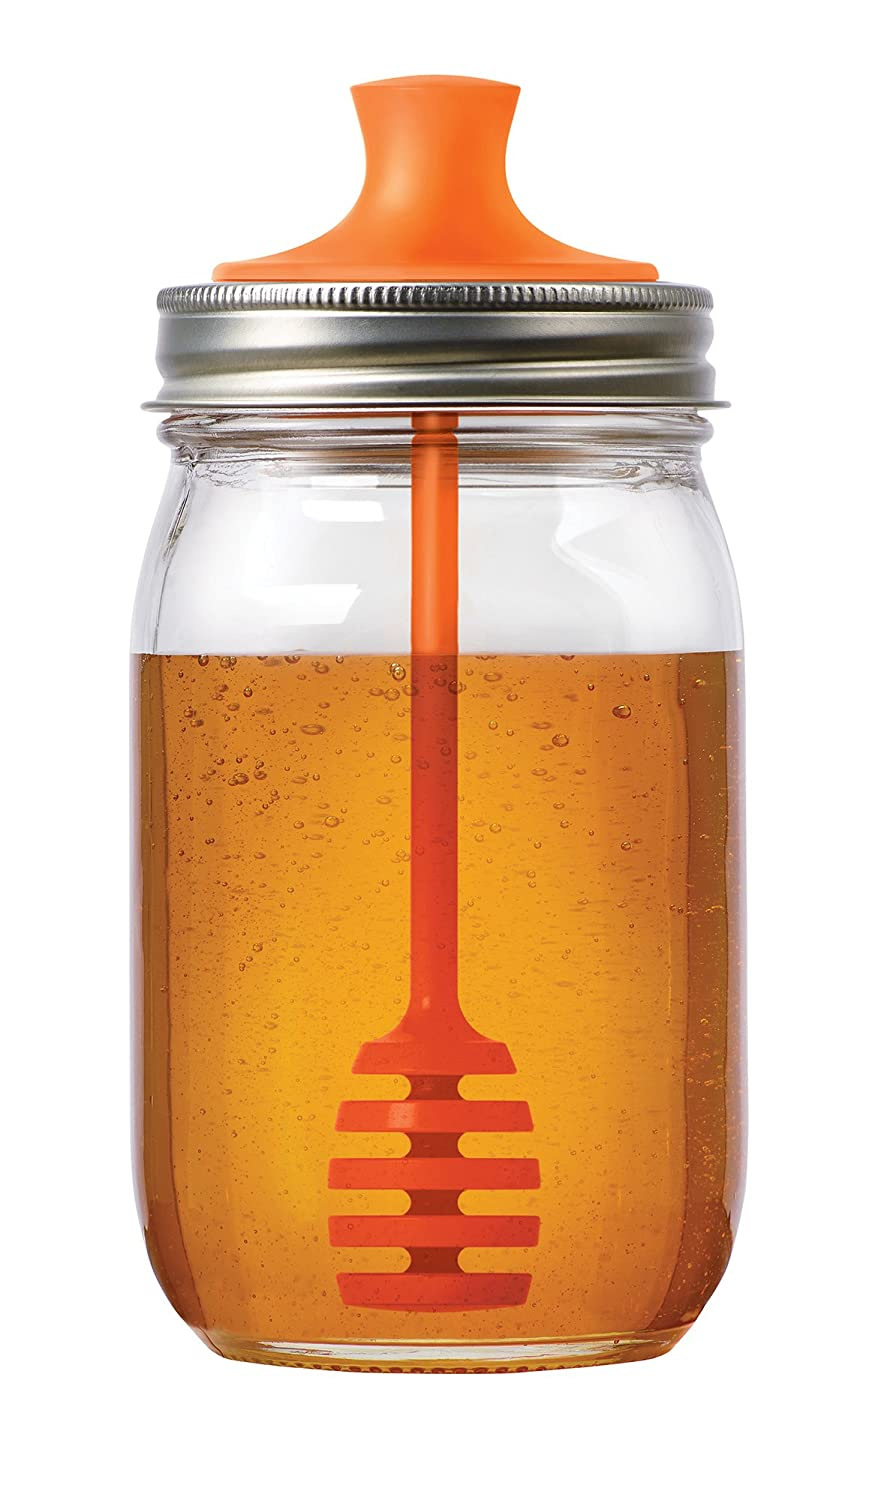 Lunarland Jarware Honey Dipper Fits Regular Mouth Mason Ball Canning Jars Lids Drizzle by Lunarland Home Kitchen